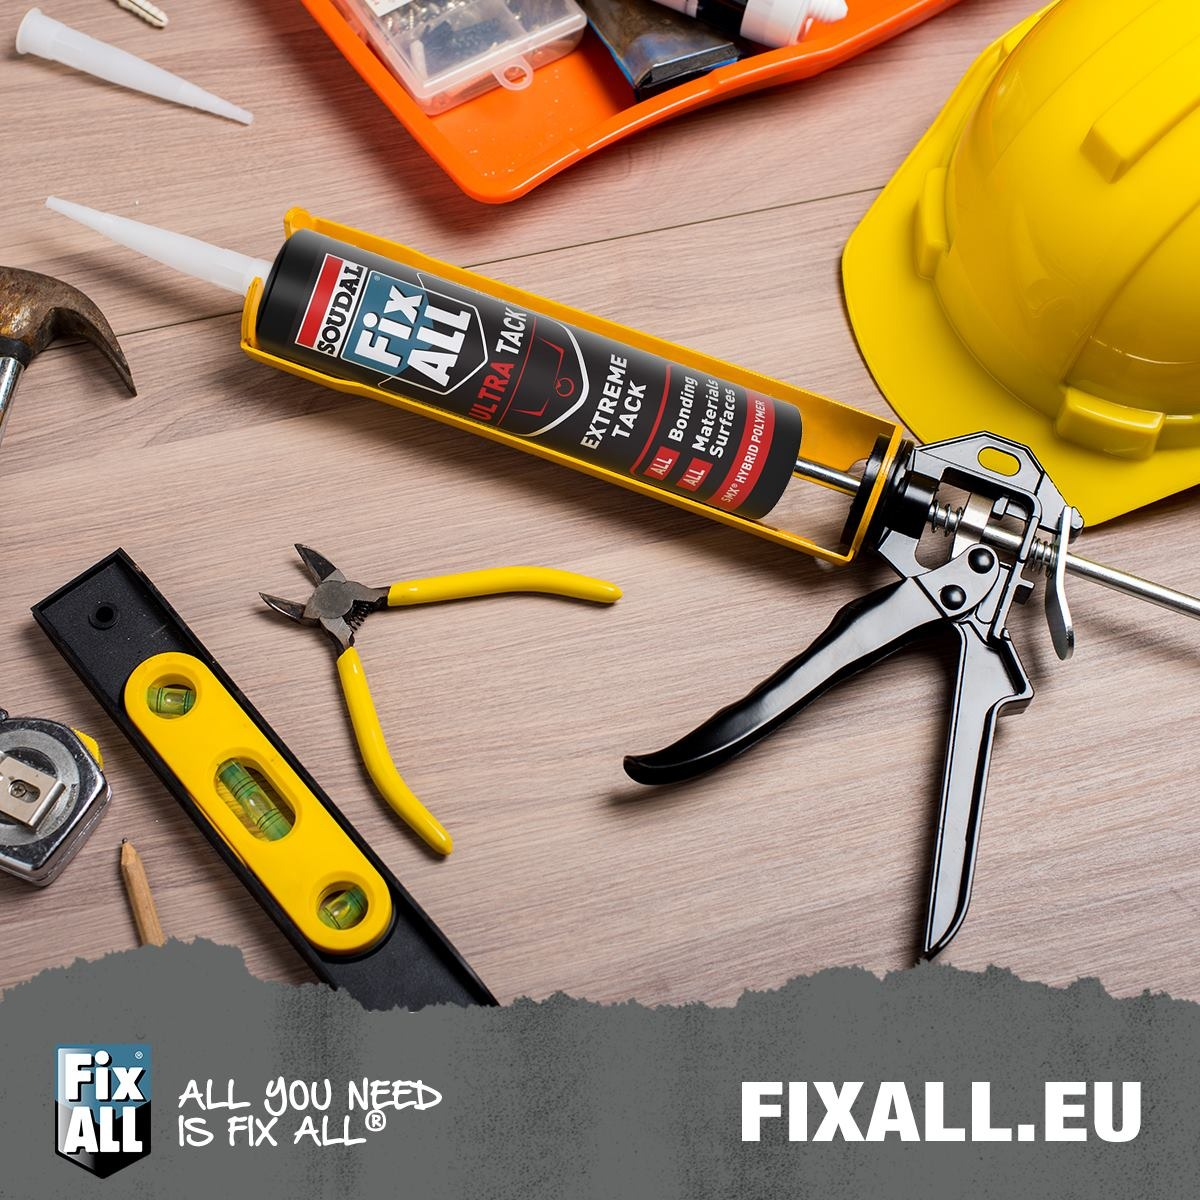 All you need is Fix ALL®